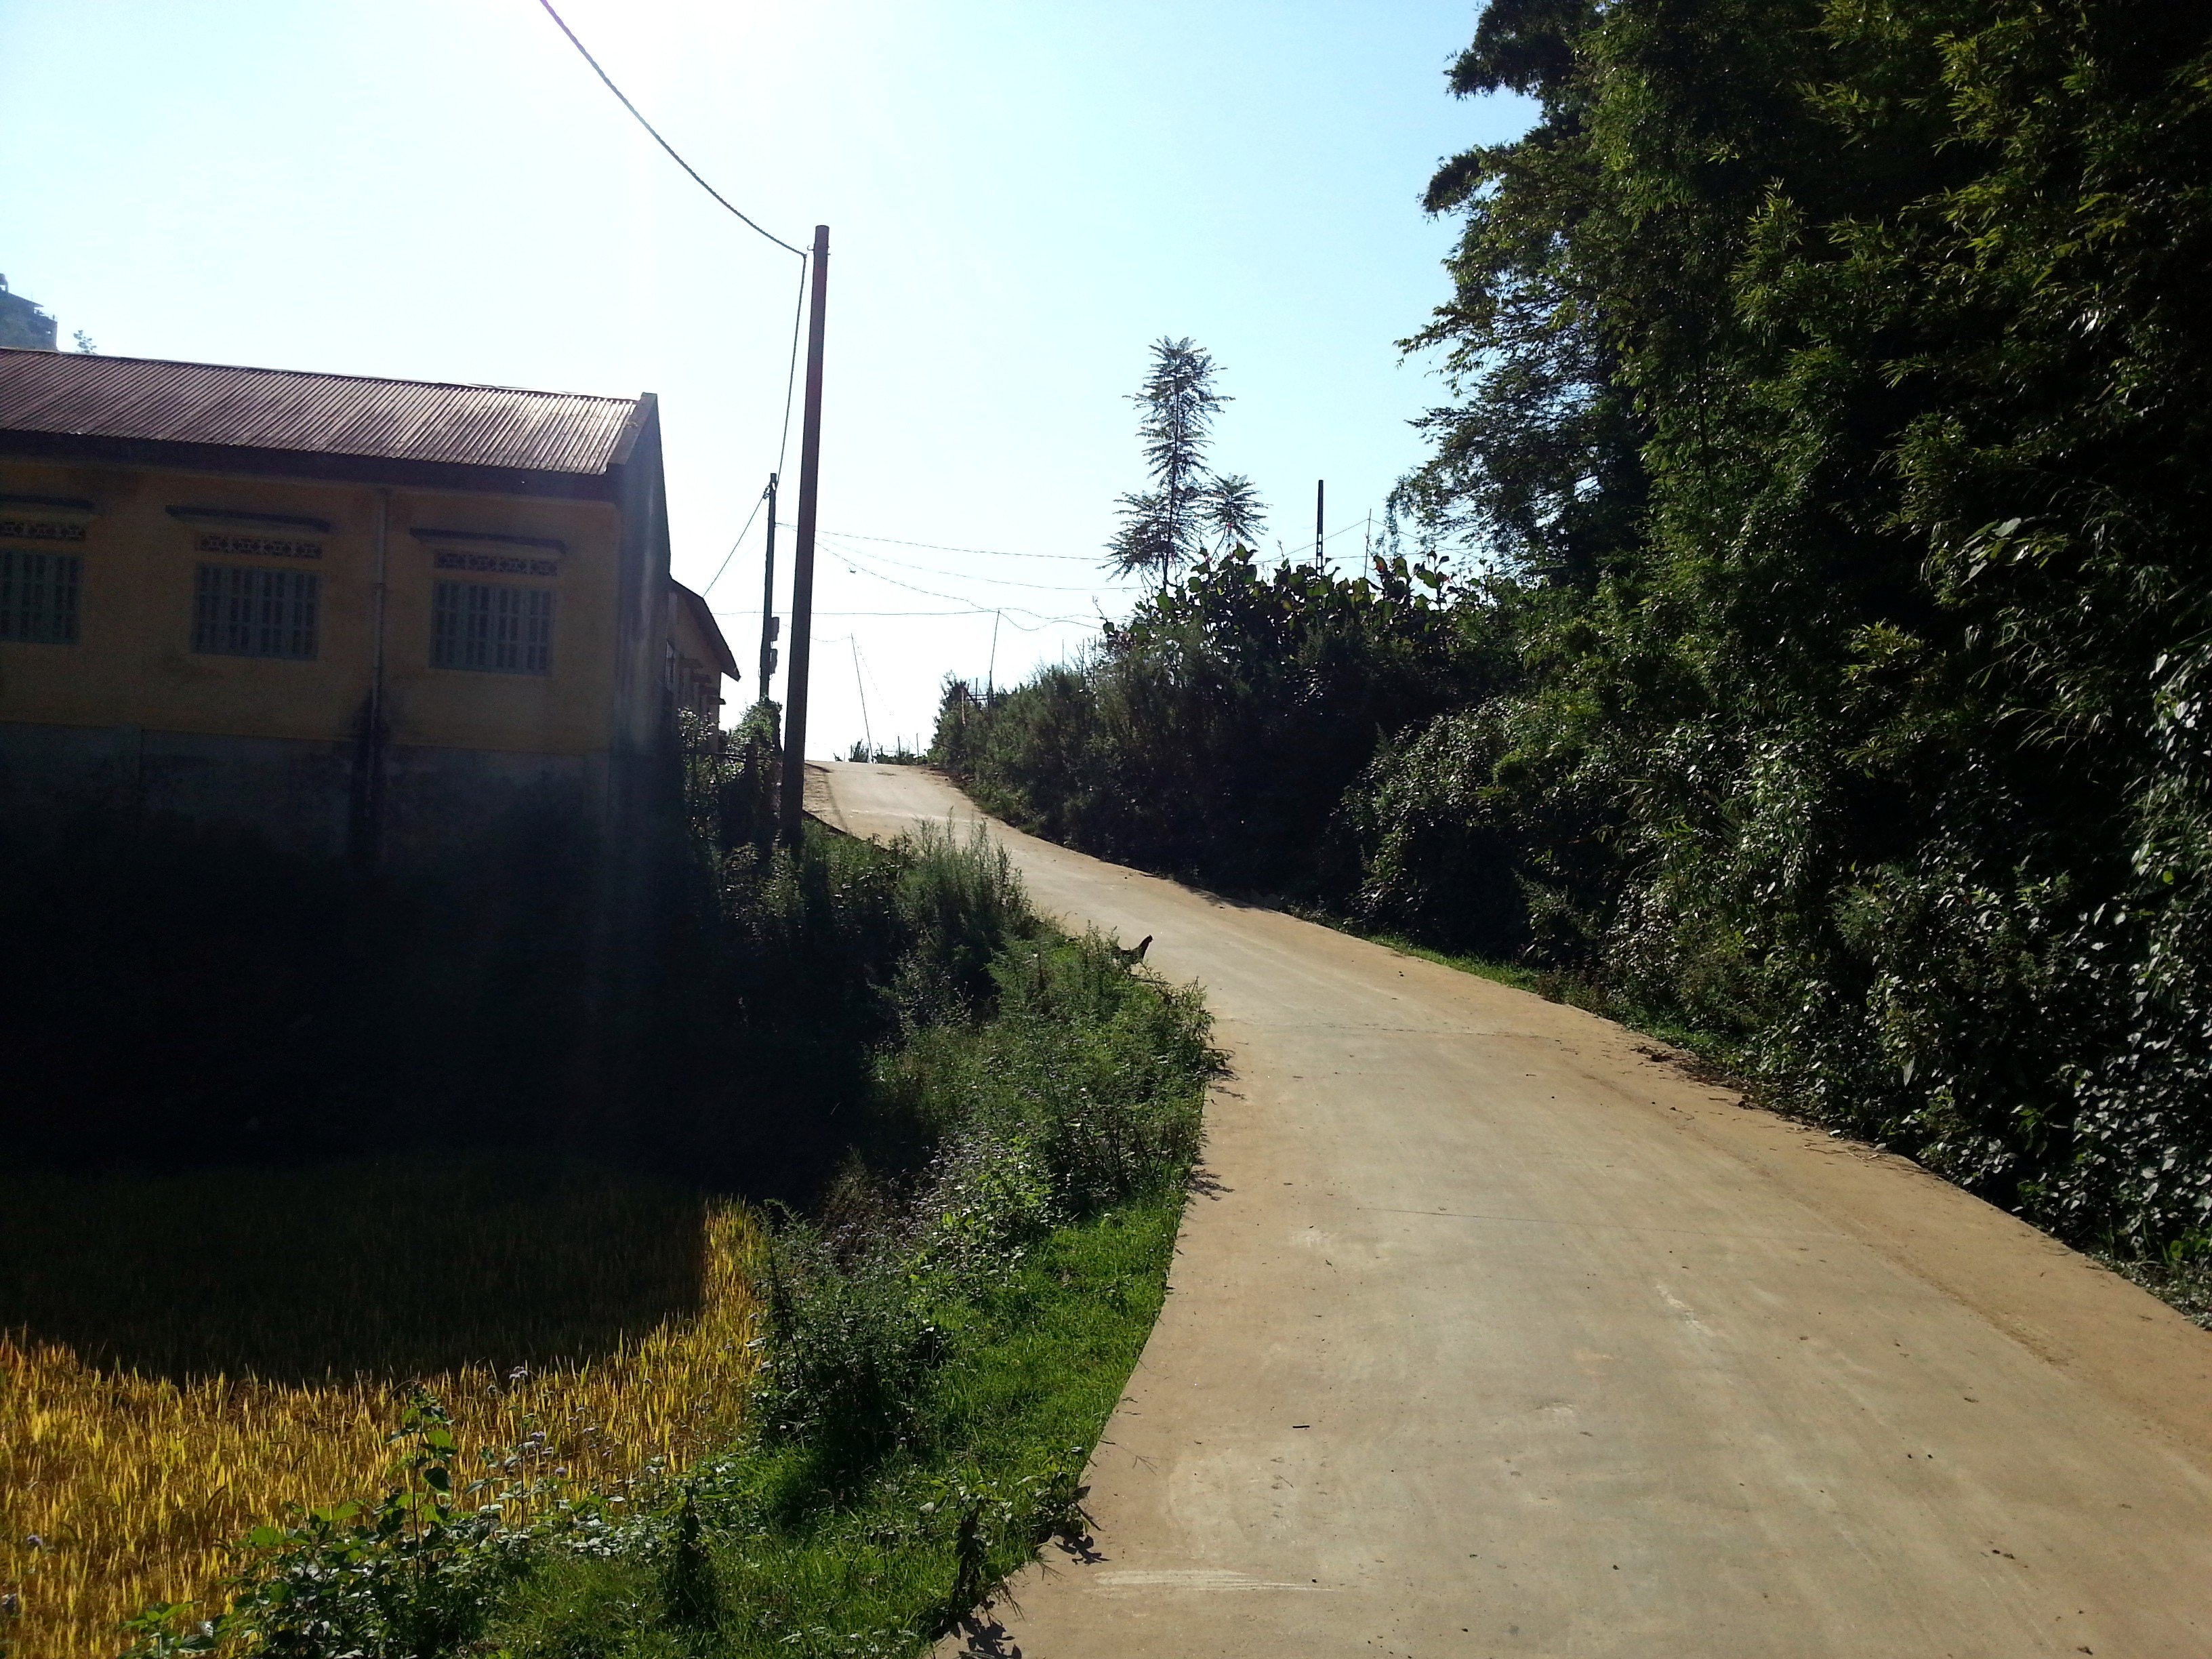 The first part of the walk to Cat Cat Village is on a Concrete Road